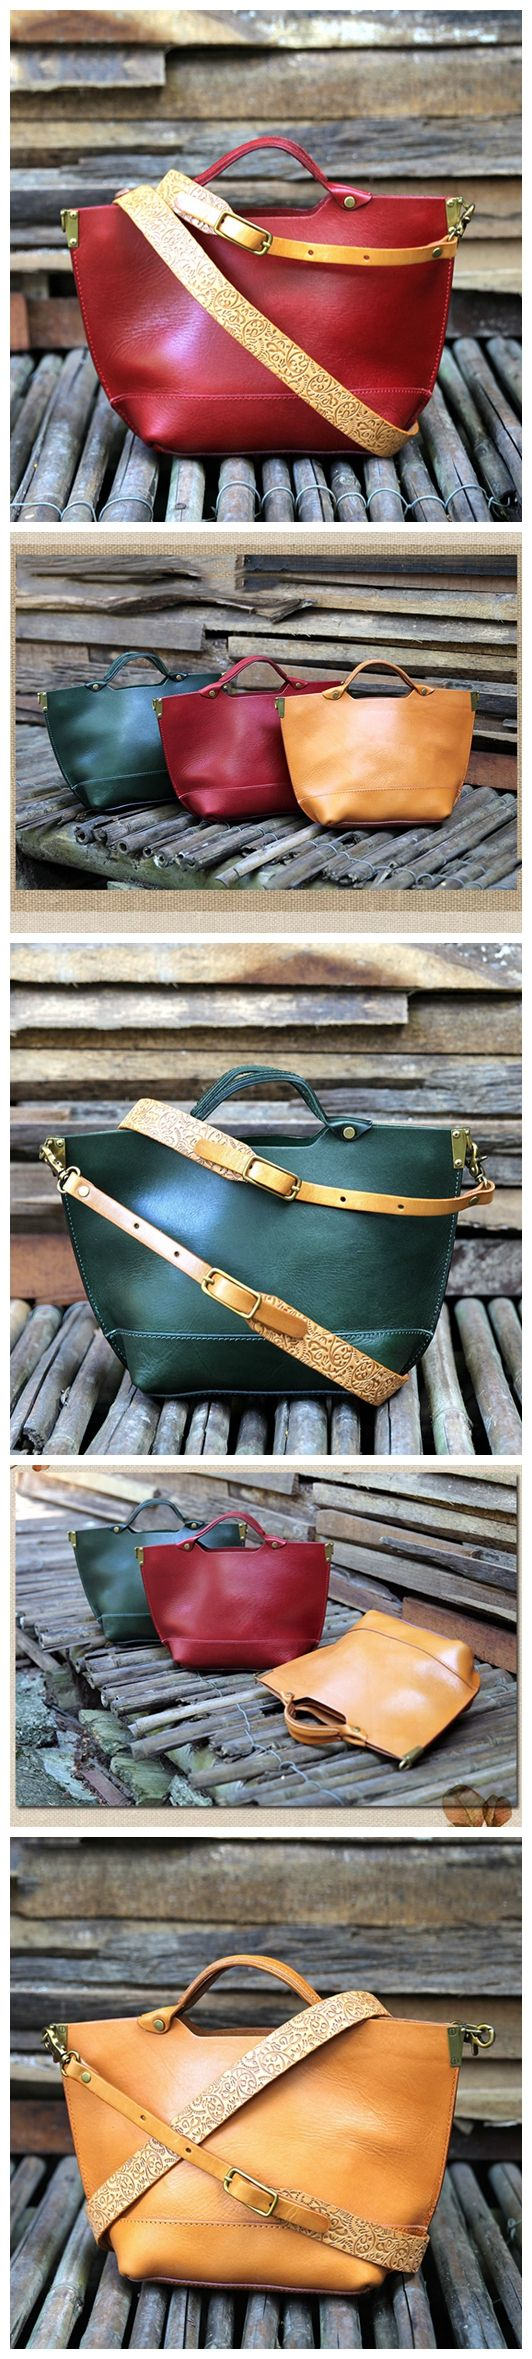 Handcrafted Vintage Vegetable Tanned Leather Messenger Women's Fashion Bag Handbag Leather Shoulder Bag Casual Satchel 14100 Overview: Design: Vintage Vegetable Tanned Leather Messenger In Stock: 4-5